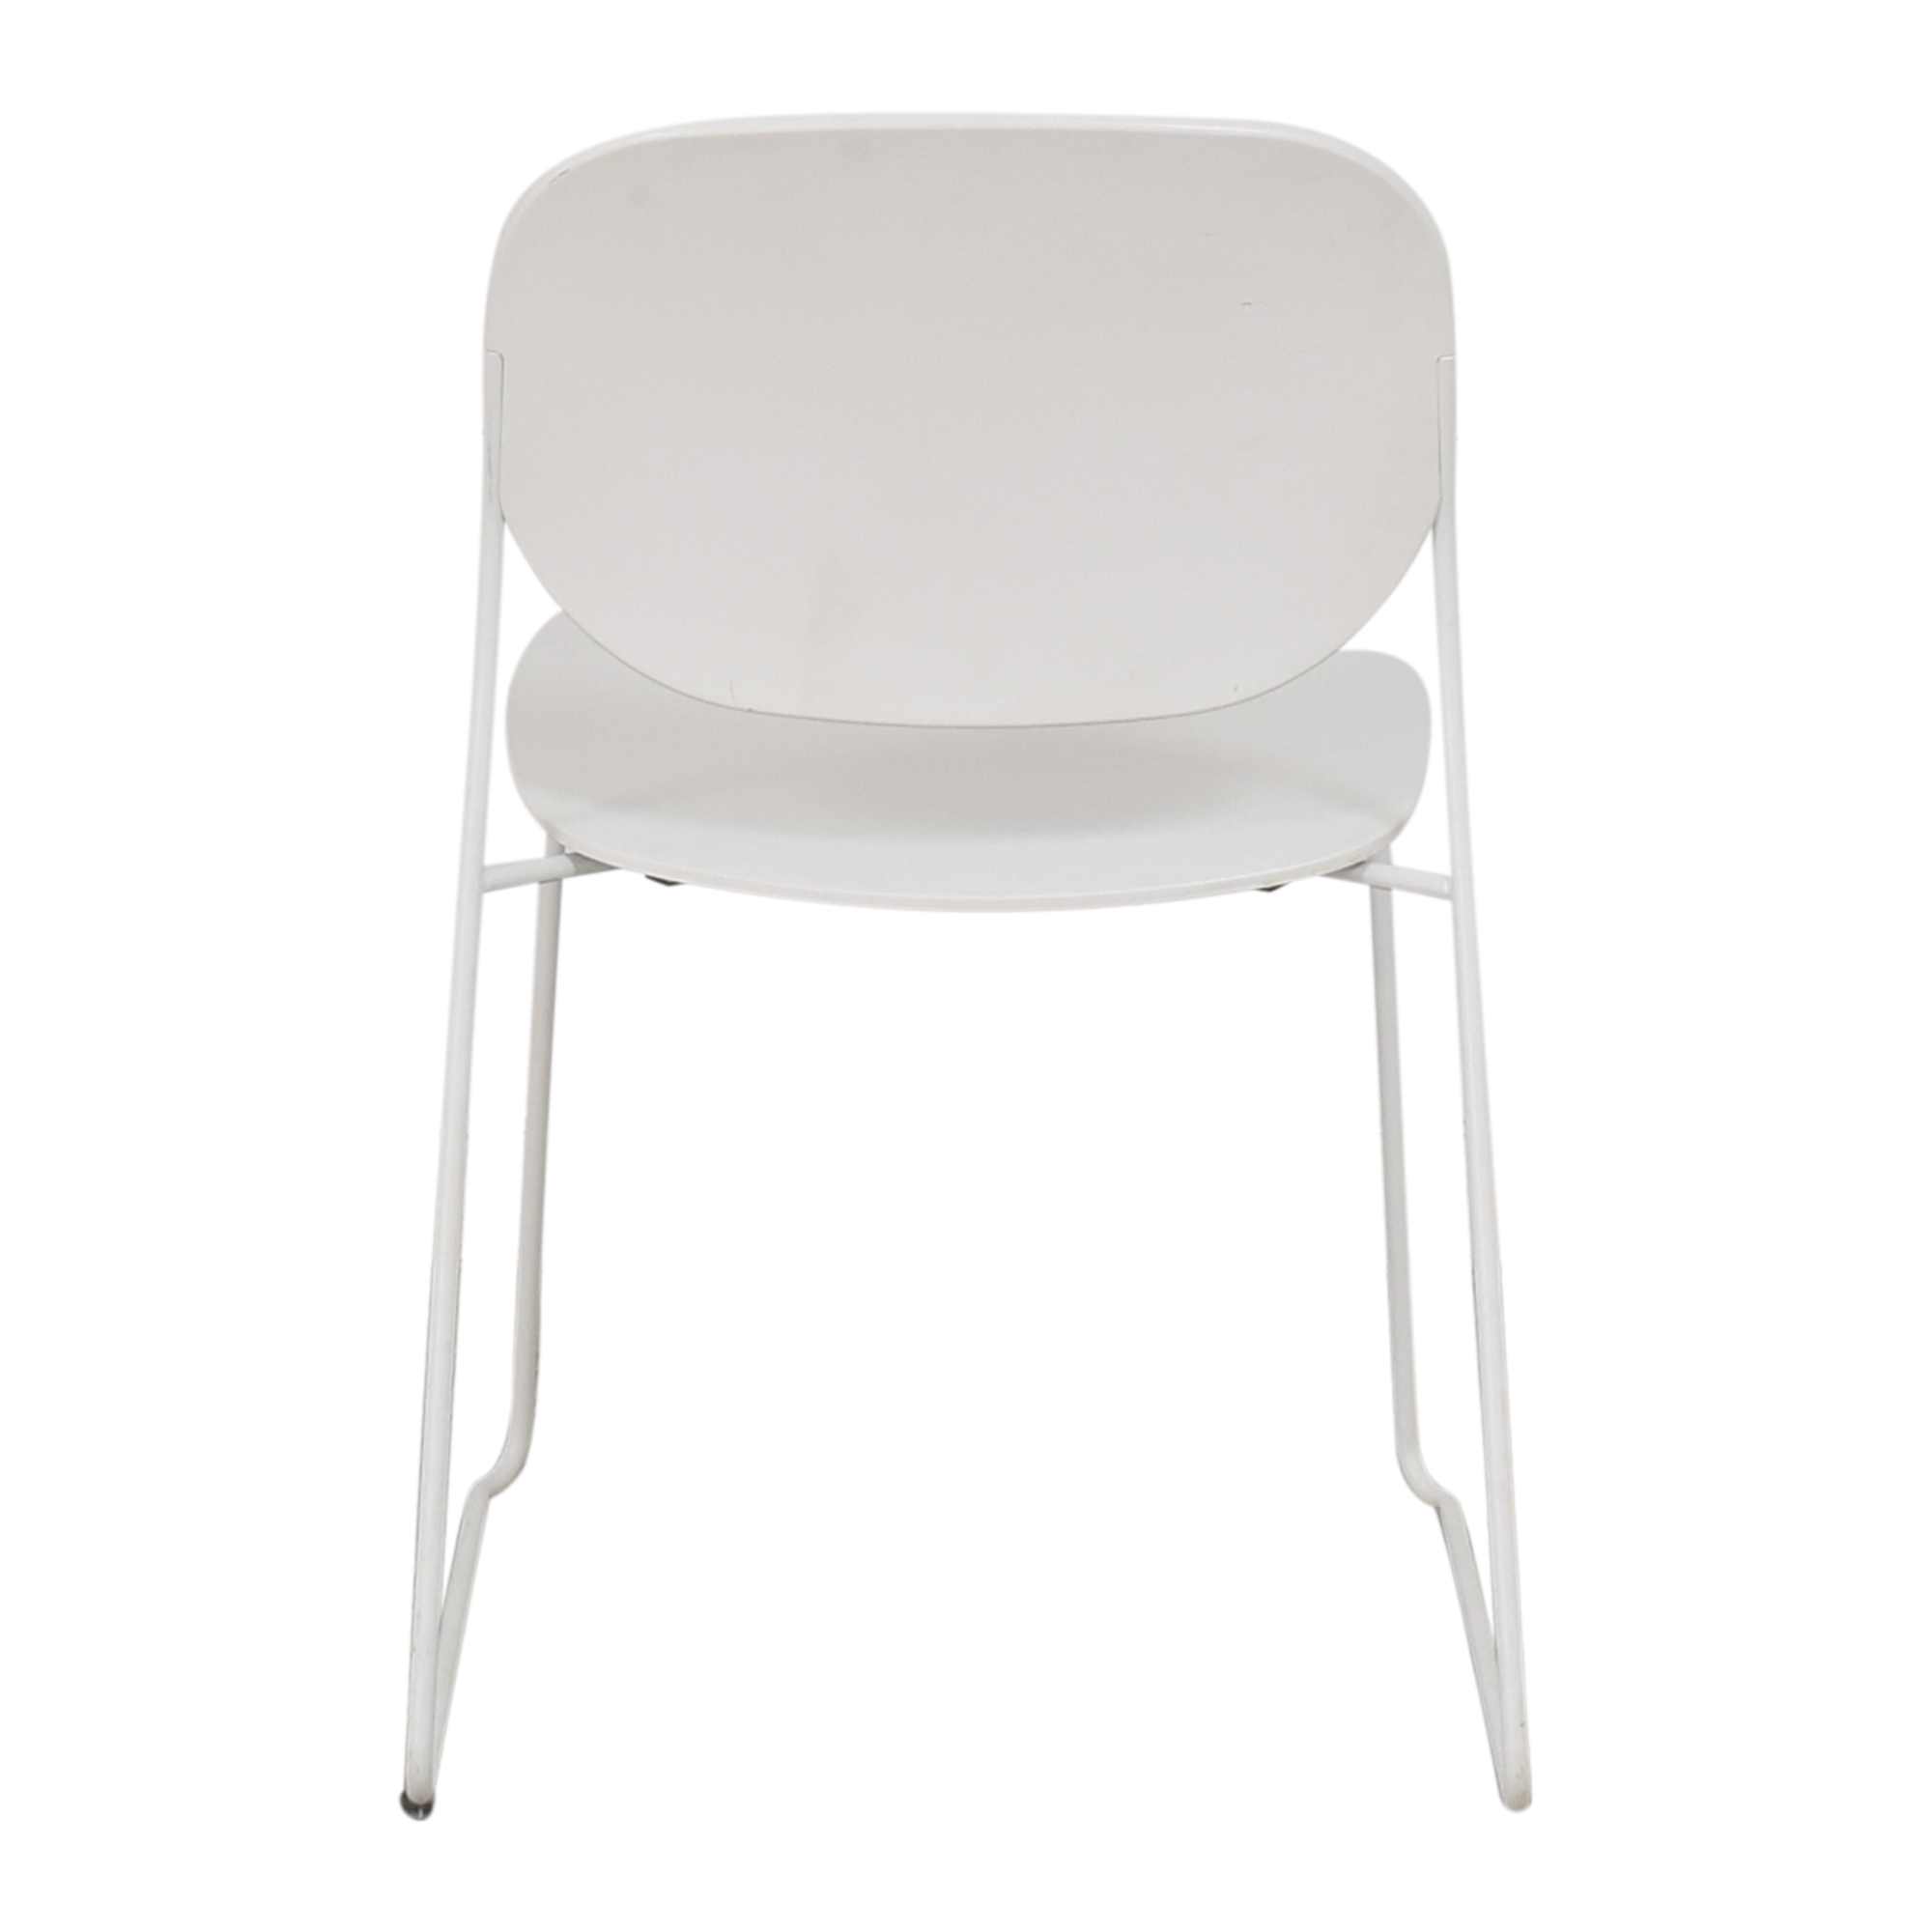 Lapalma Lapalma Olo Dining Chair Dining Chairs